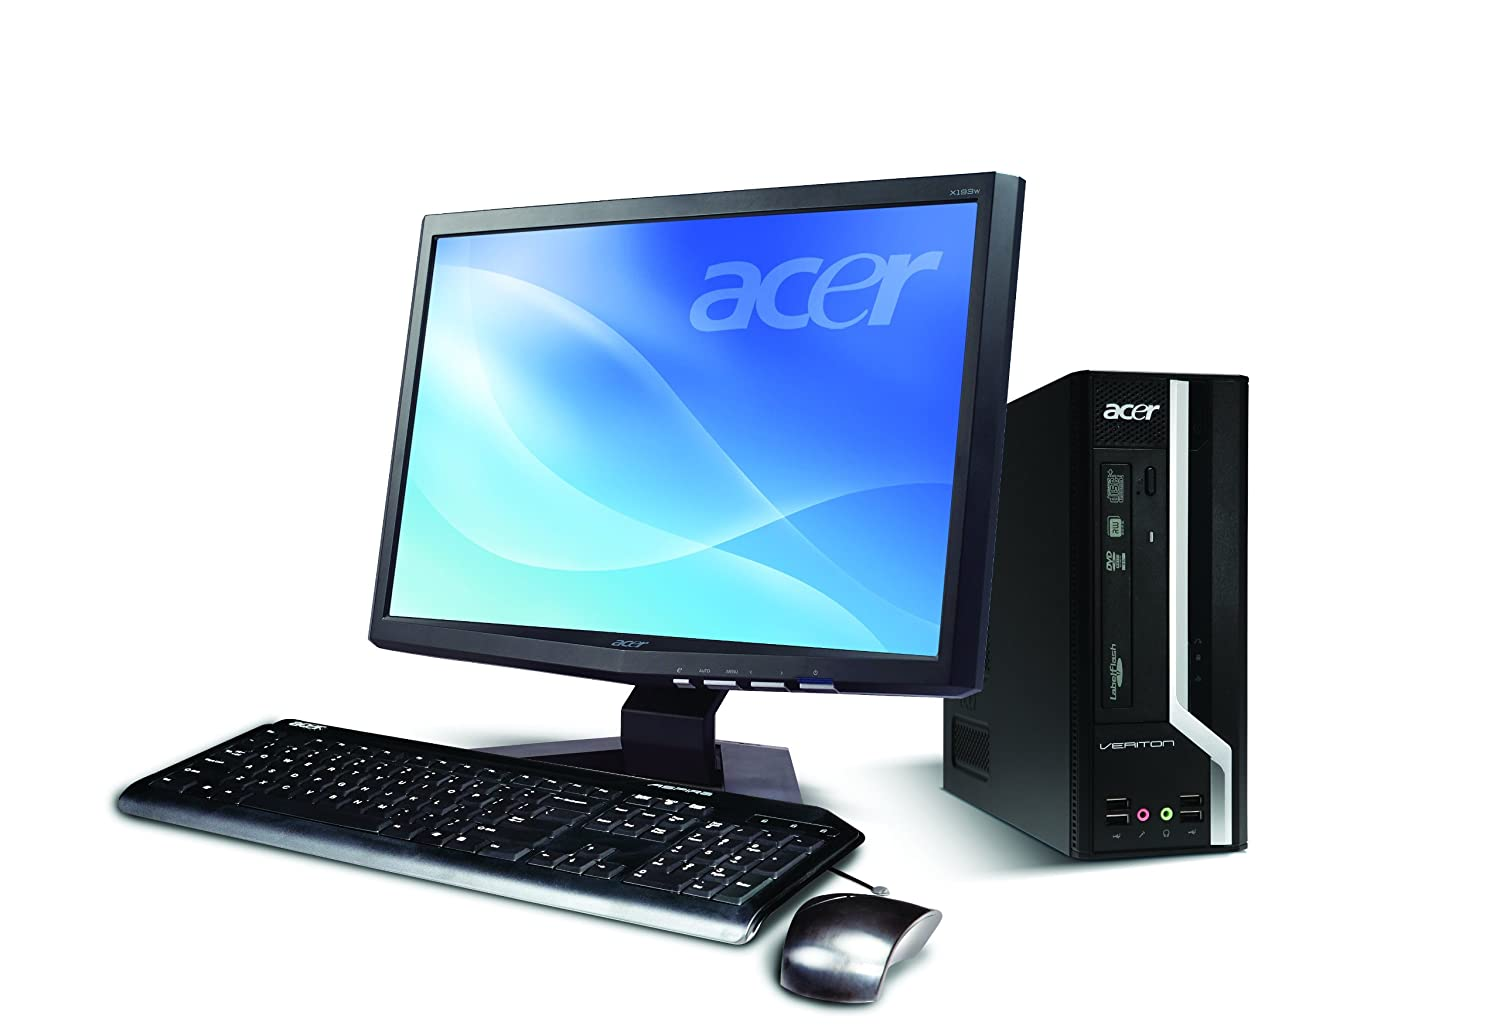 ACER LABELFLASH DRIVERS FOR WINDOWS 7